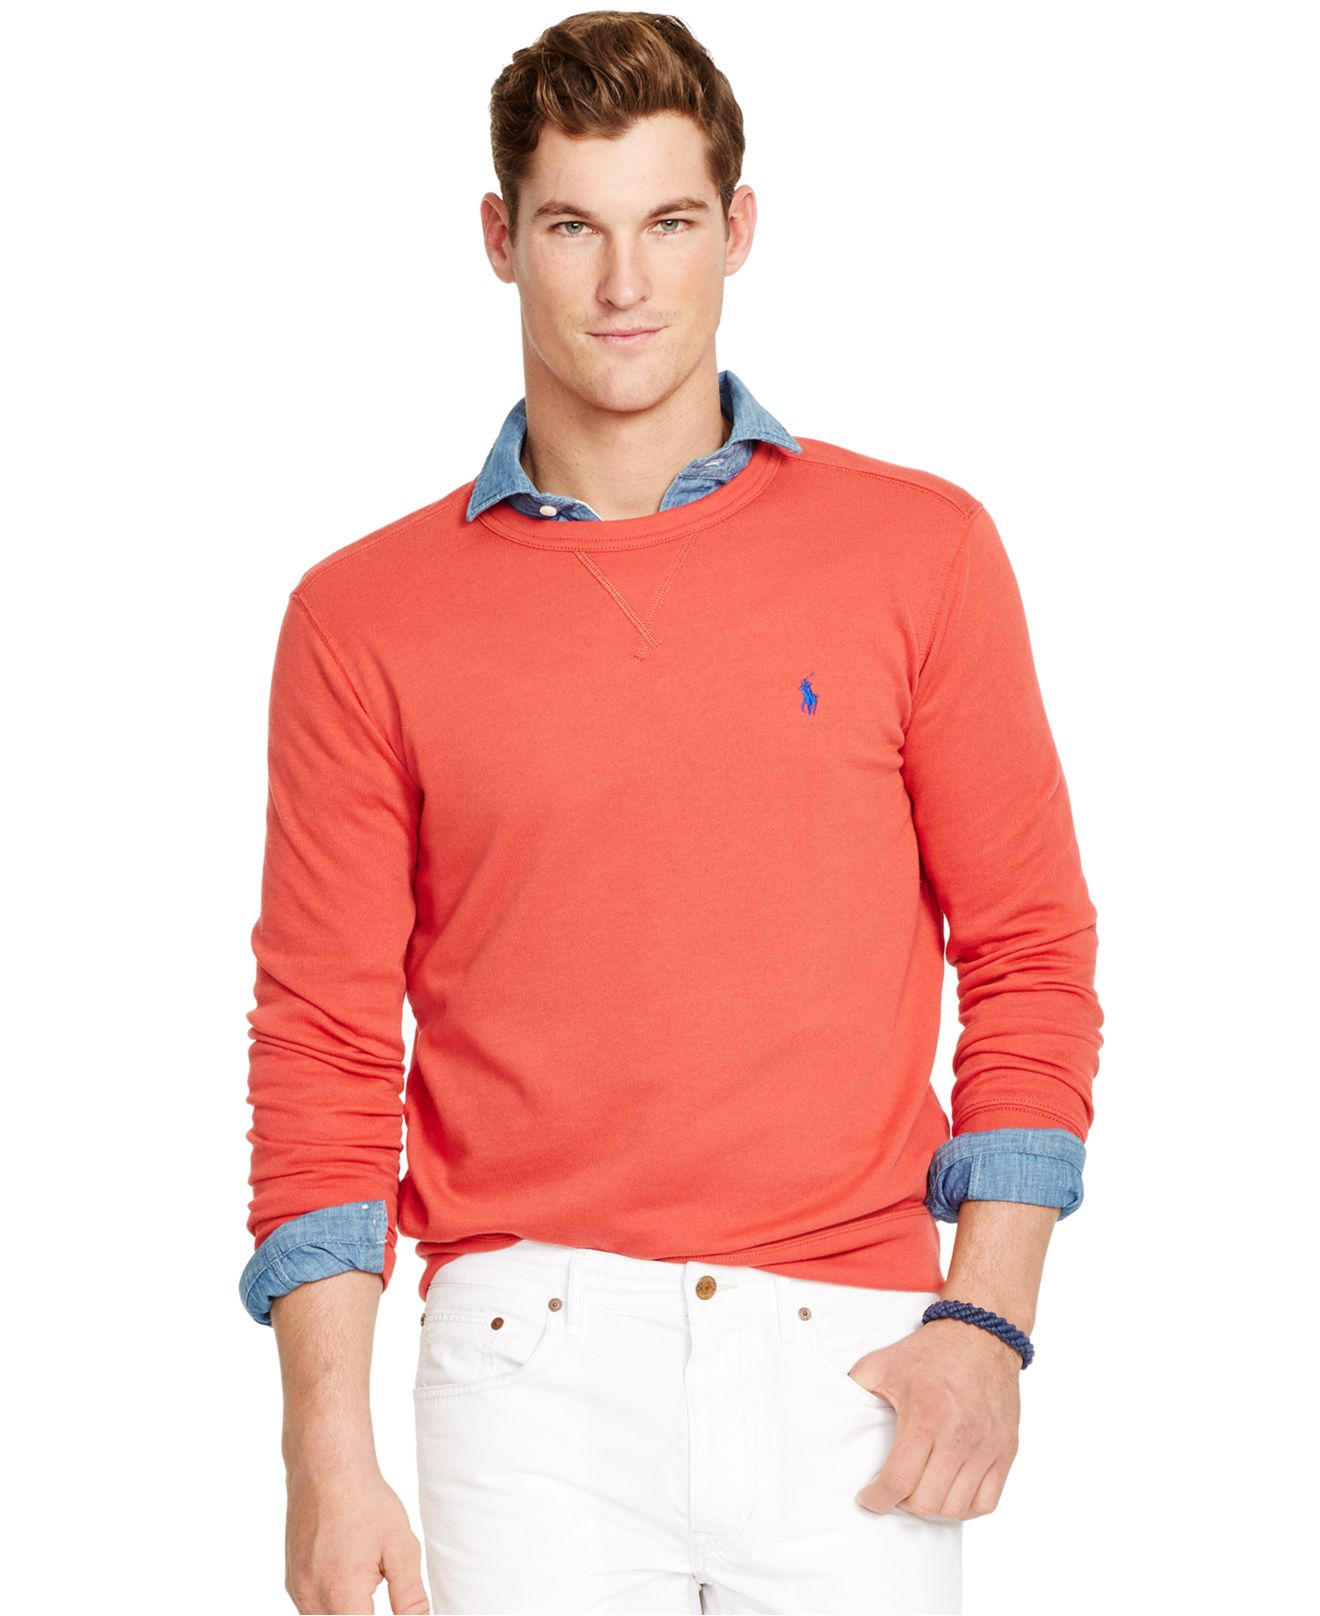 polo ralph lauren terry crew neck pullover in red for men. Black Bedroom Furniture Sets. Home Design Ideas